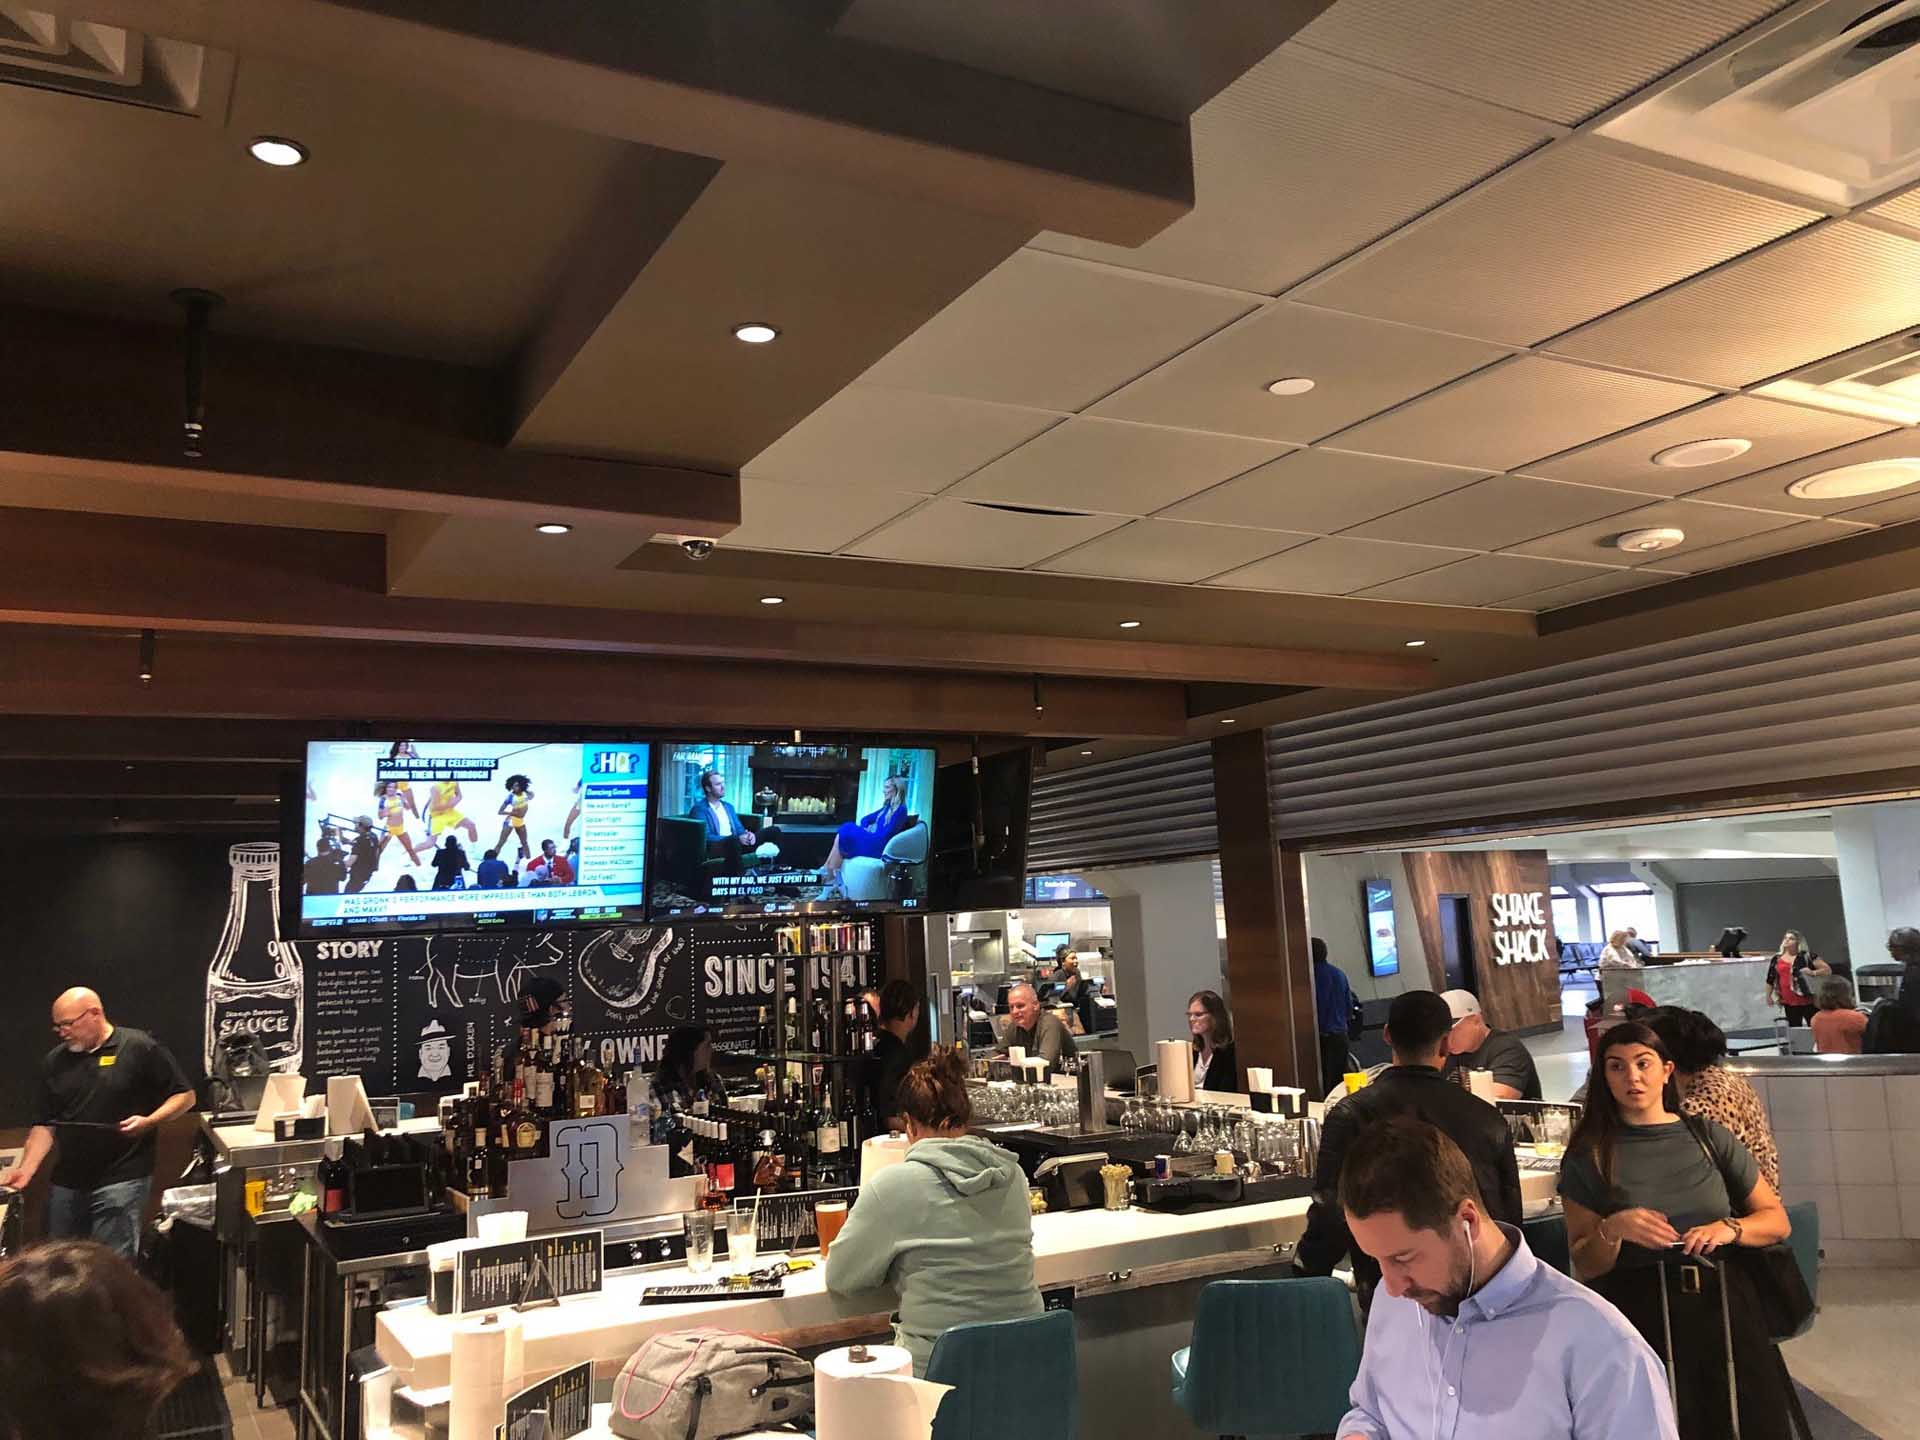 Franchising.com: Dickey's Barbecue Pit Lands at DFW Airport with a Full Bar